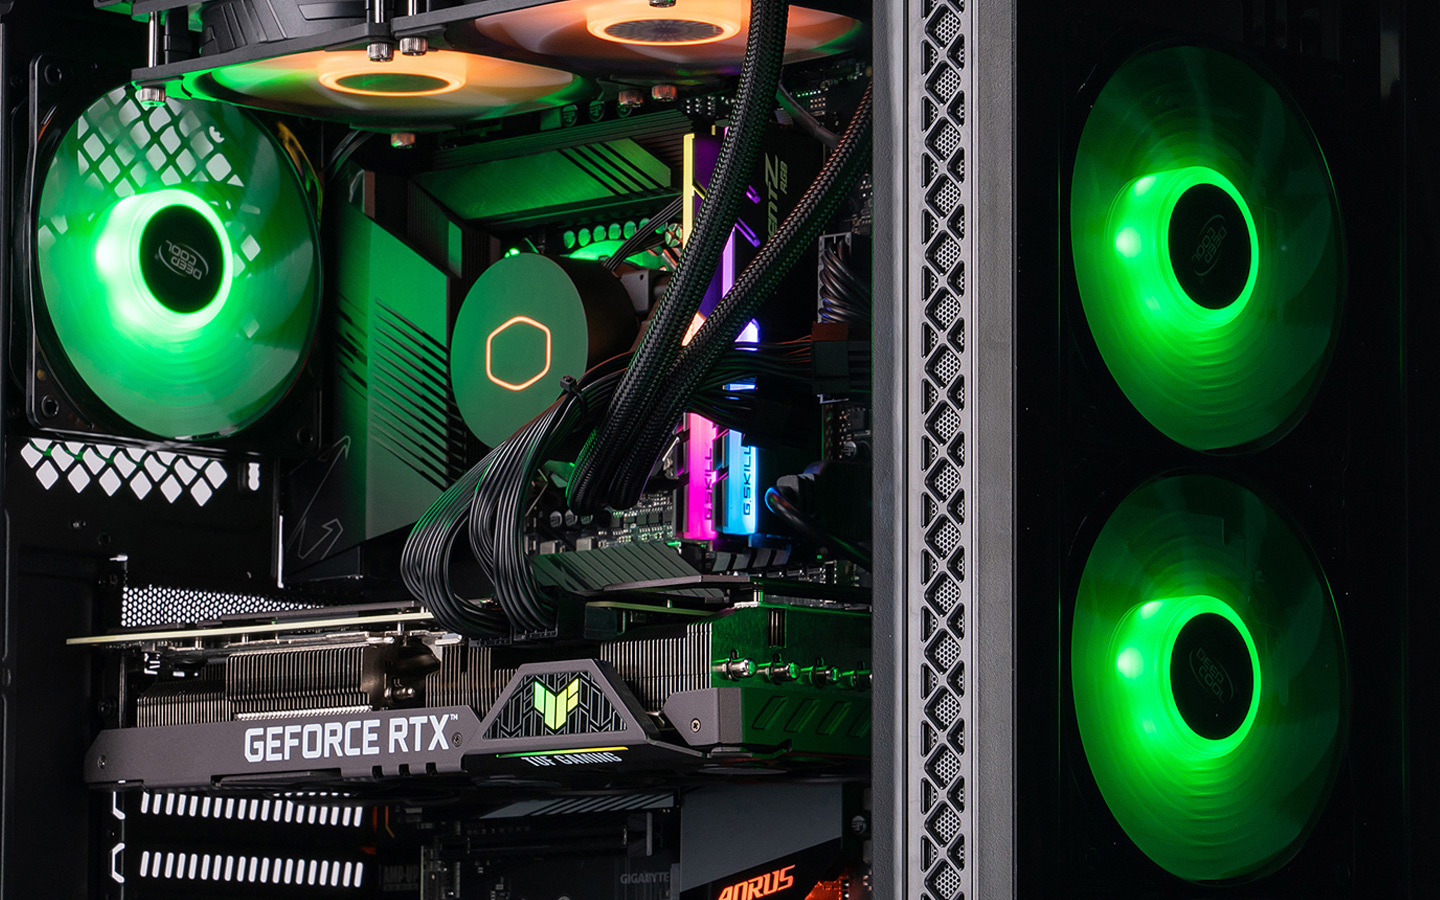 A picture of an ABS Gladiator PC with green RGB components in the case that's shot at an angle to display the internal components of the PC.